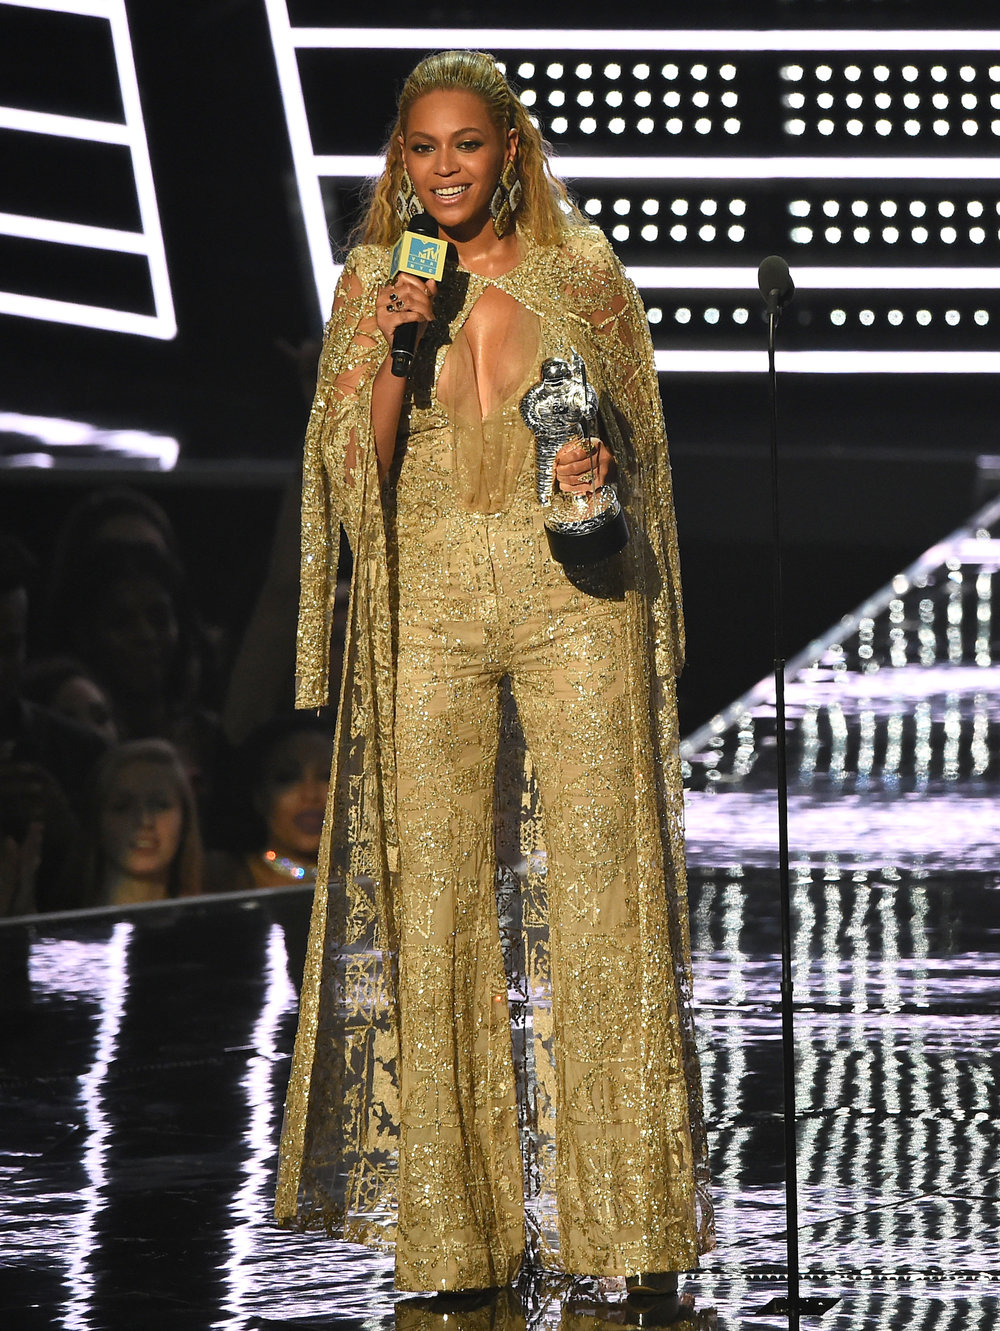 """Beyonce accepts the award for best female video for """"Hold Up"""" at the MTV Video Music Awards at Madison Square Garden on Sunday, Aug. 28, 2016, in New York. (Charles Sykes/Invision/AP)"""